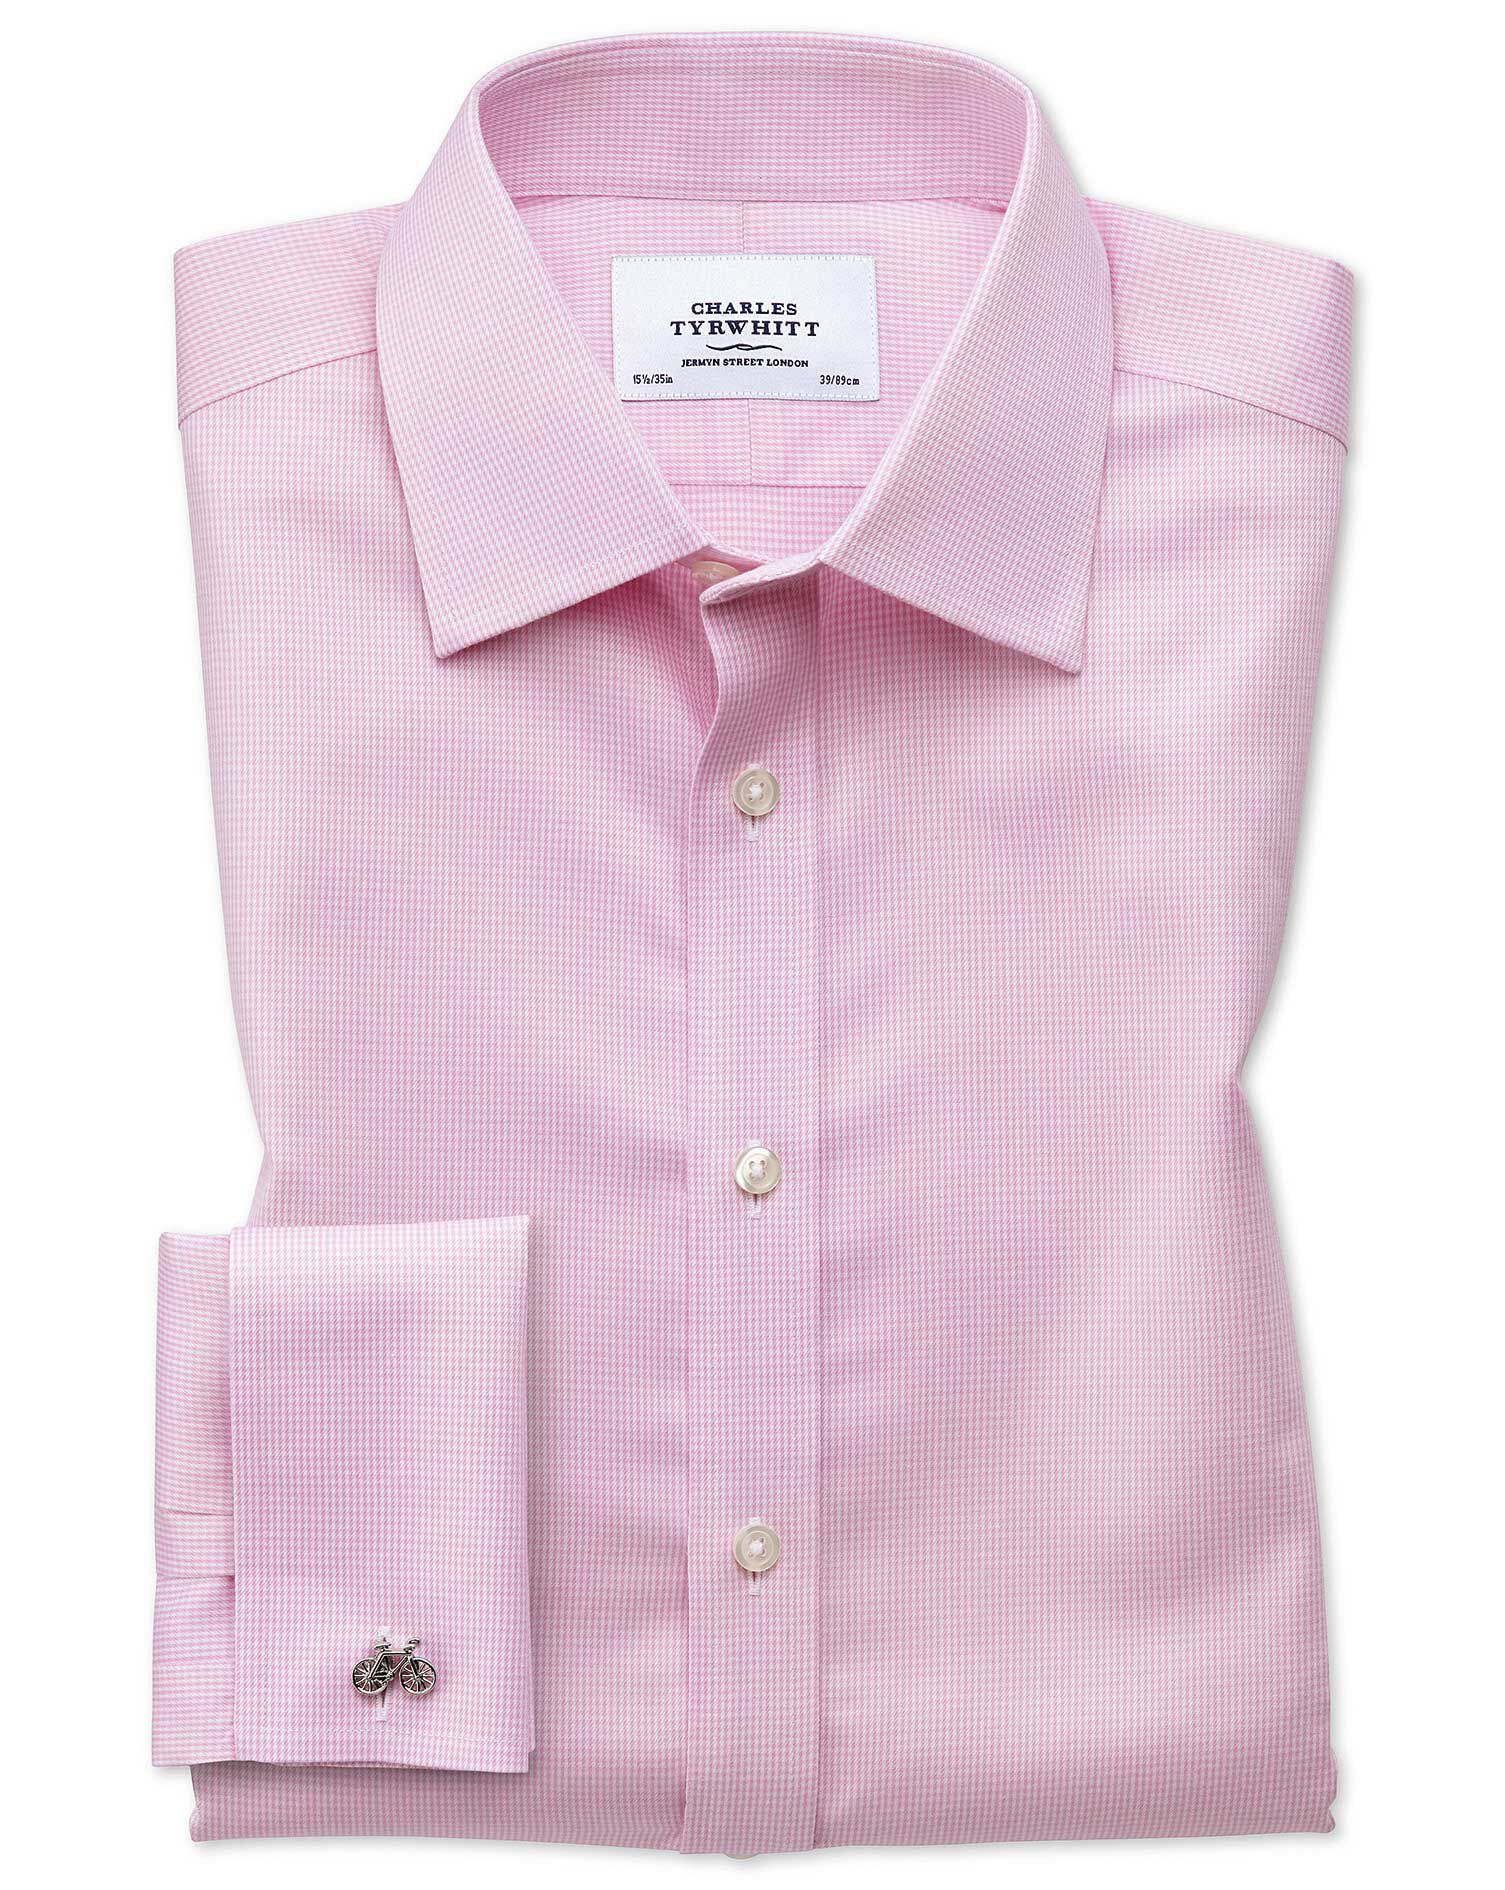 Extra Slim Fit Non-Iron Puppytooth Light Pink Cotton Formal Shirt Single Cuff Size 17.5/34 by Charle